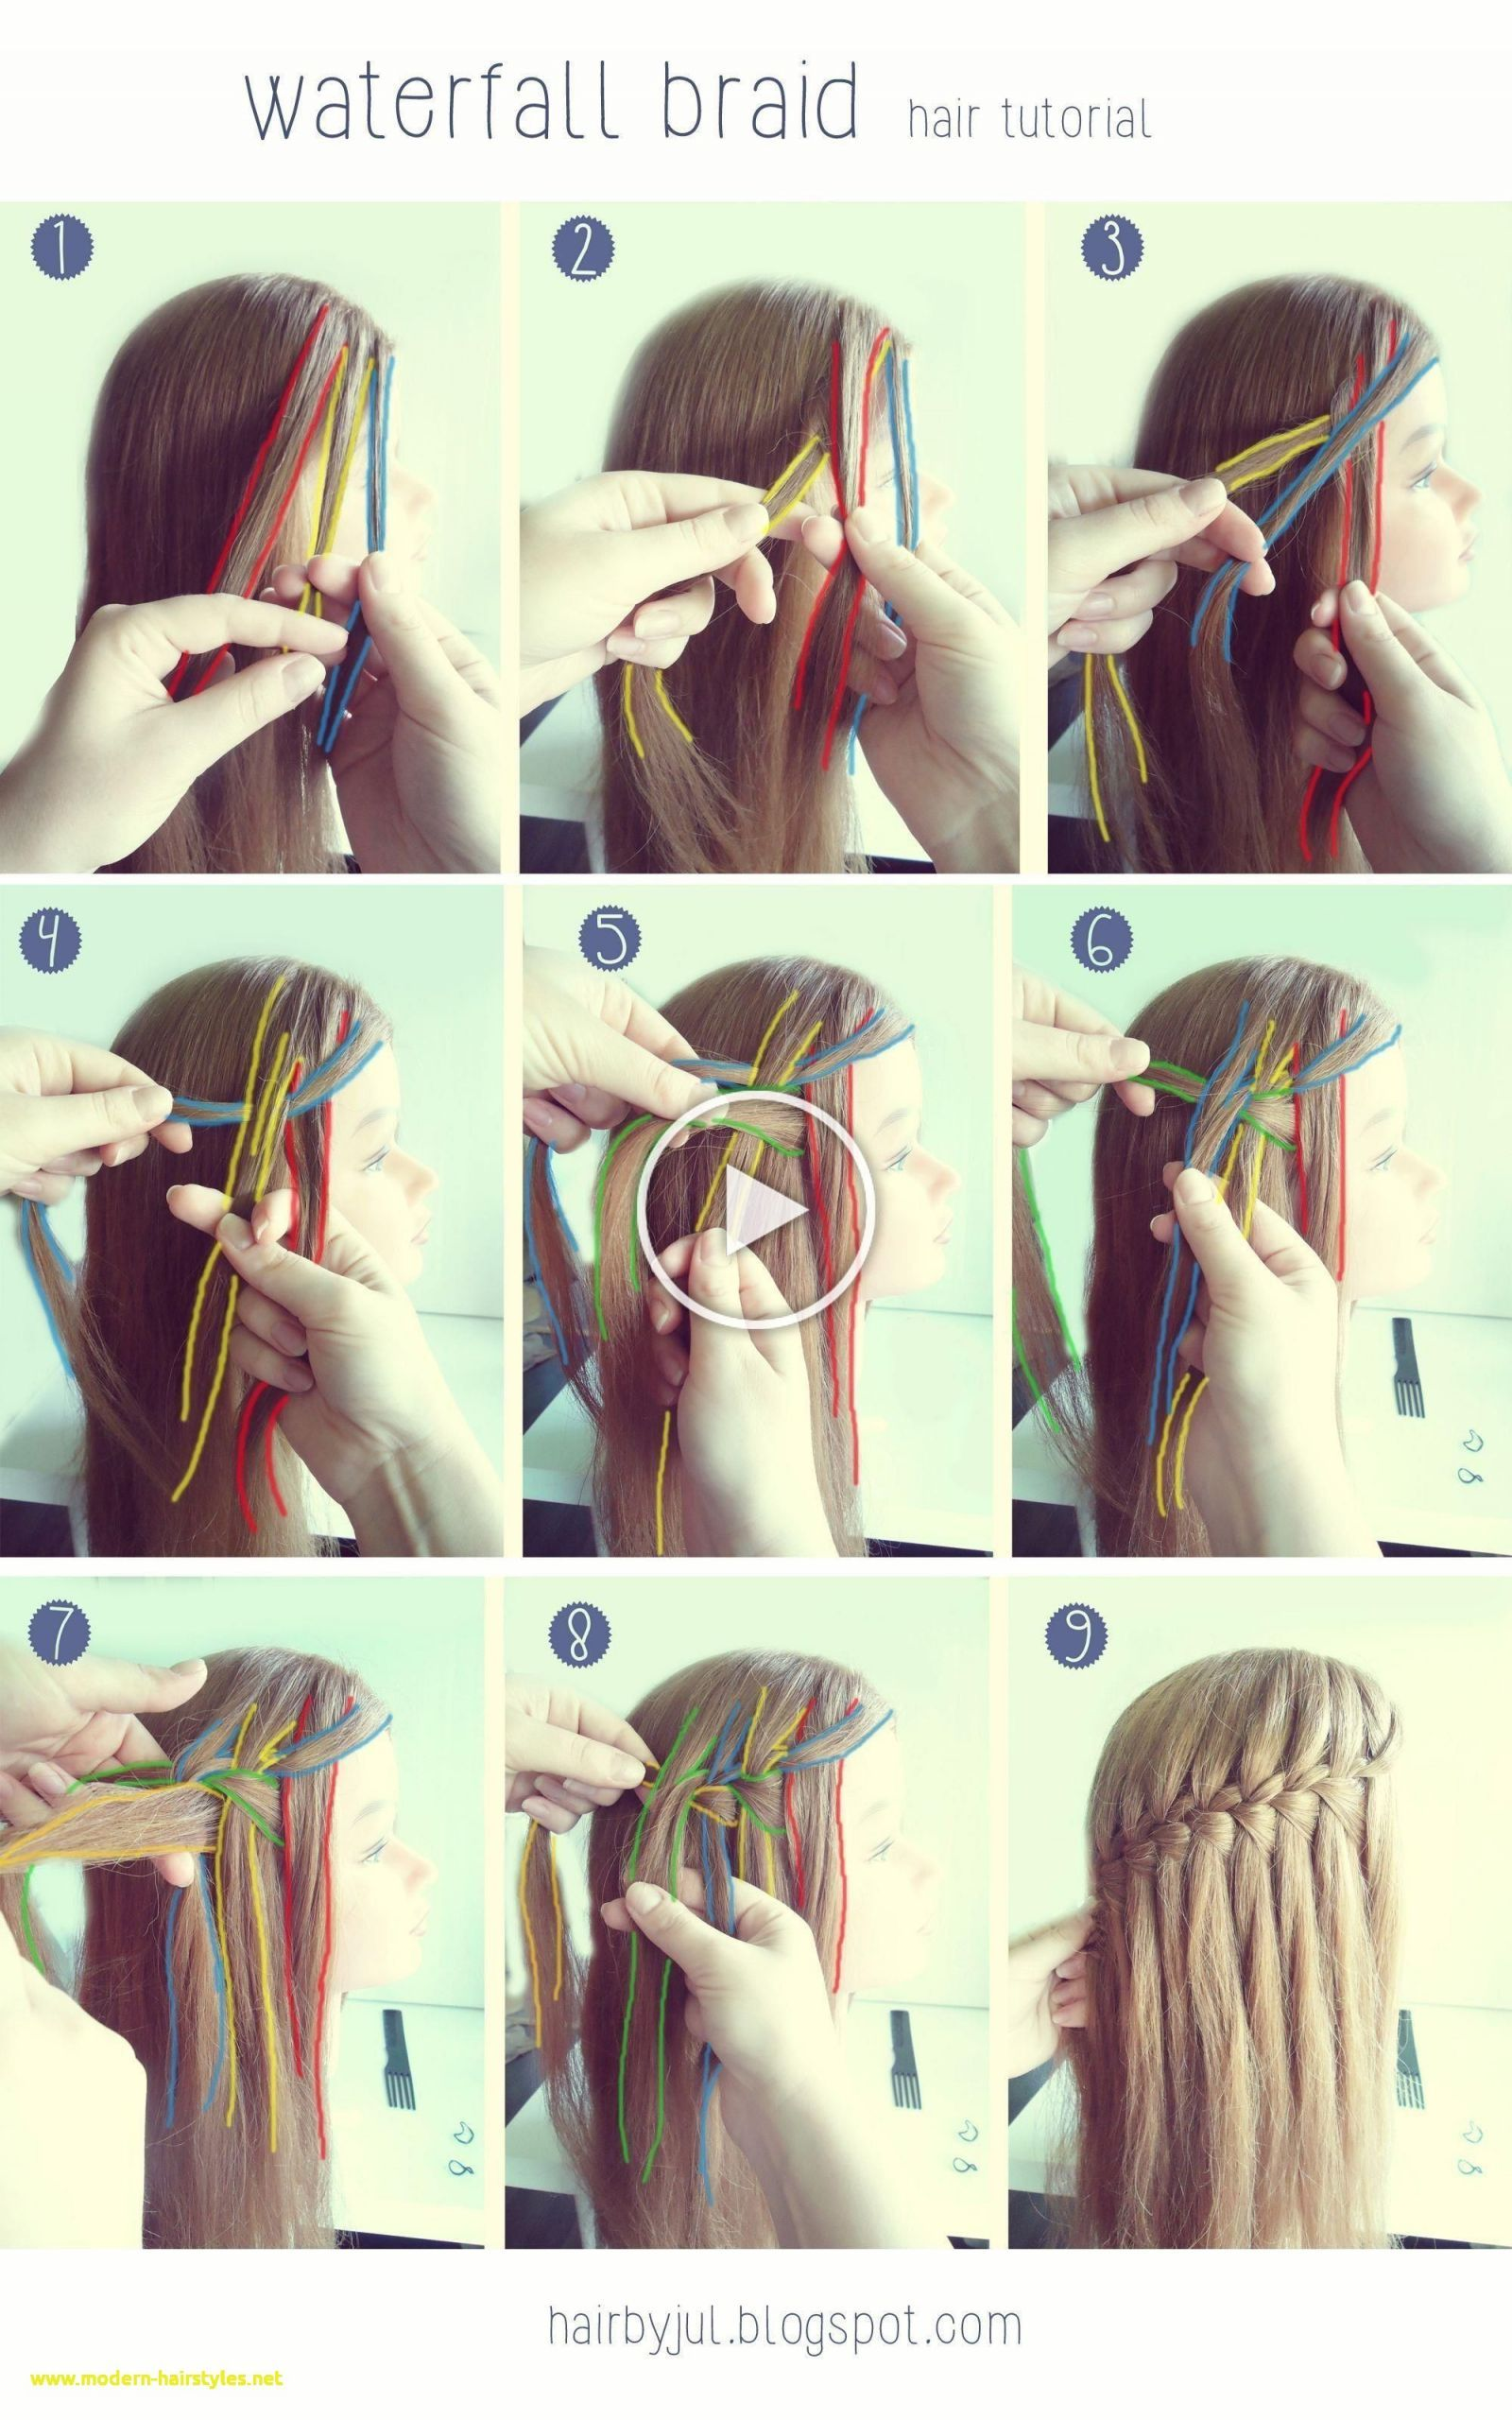 How To Make Different Hair Style At Home In 2020 Hair Styles Braided Hairstyles Tutorials Long Hair Styles